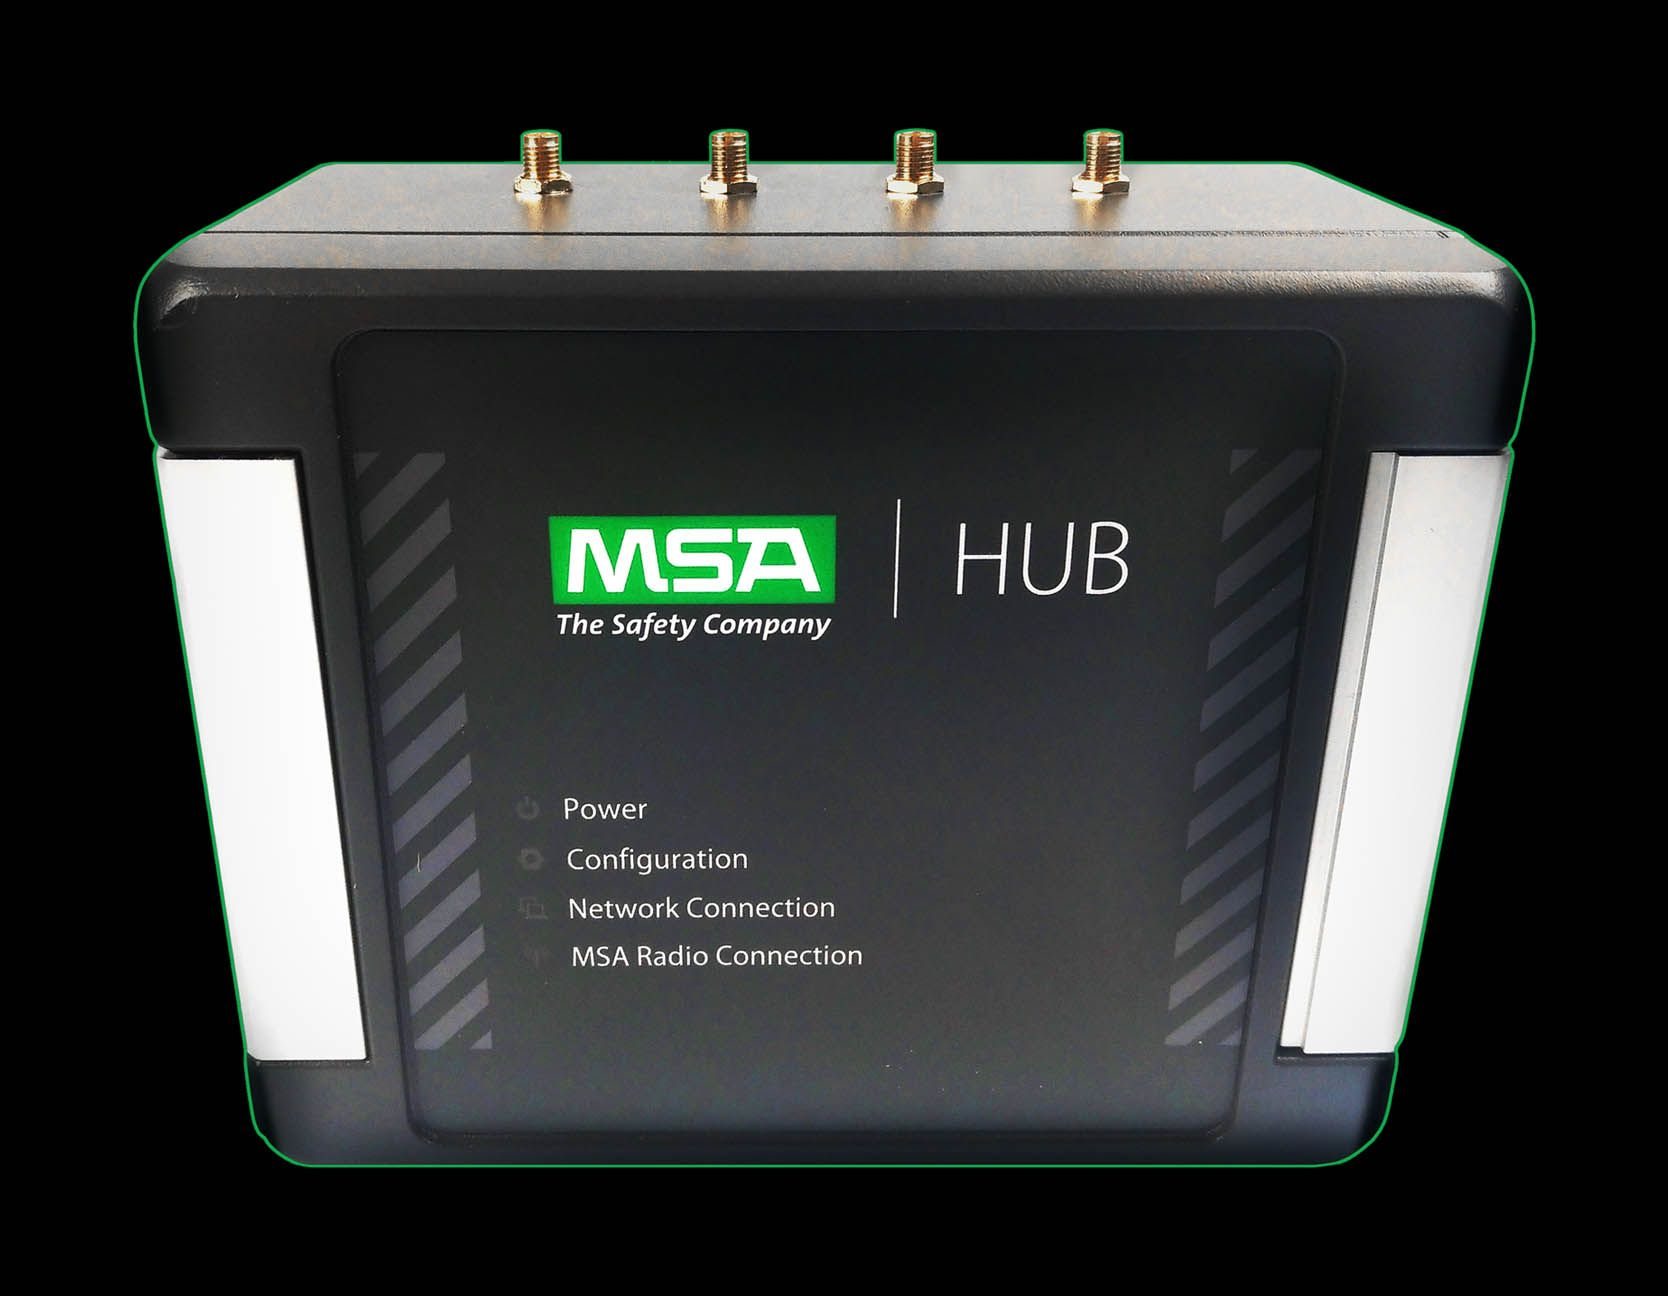 The MSA Hub device for Connected Firefighter